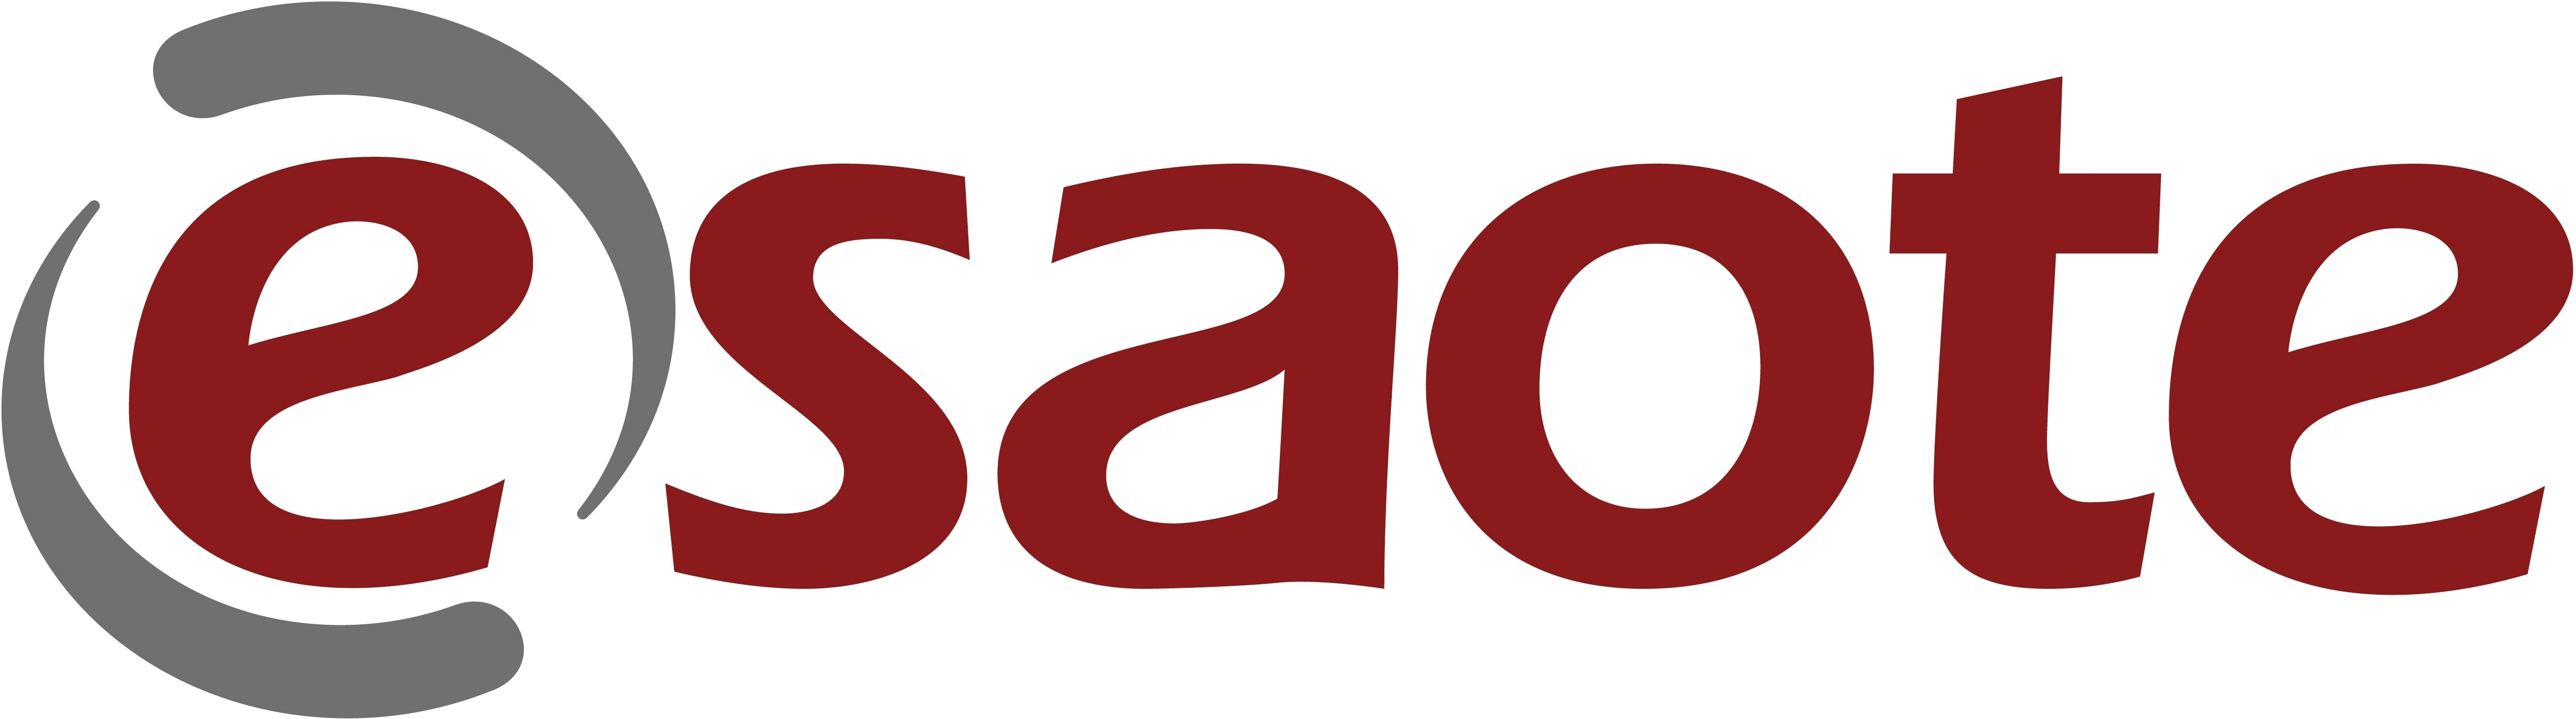 Esaote Group logo.